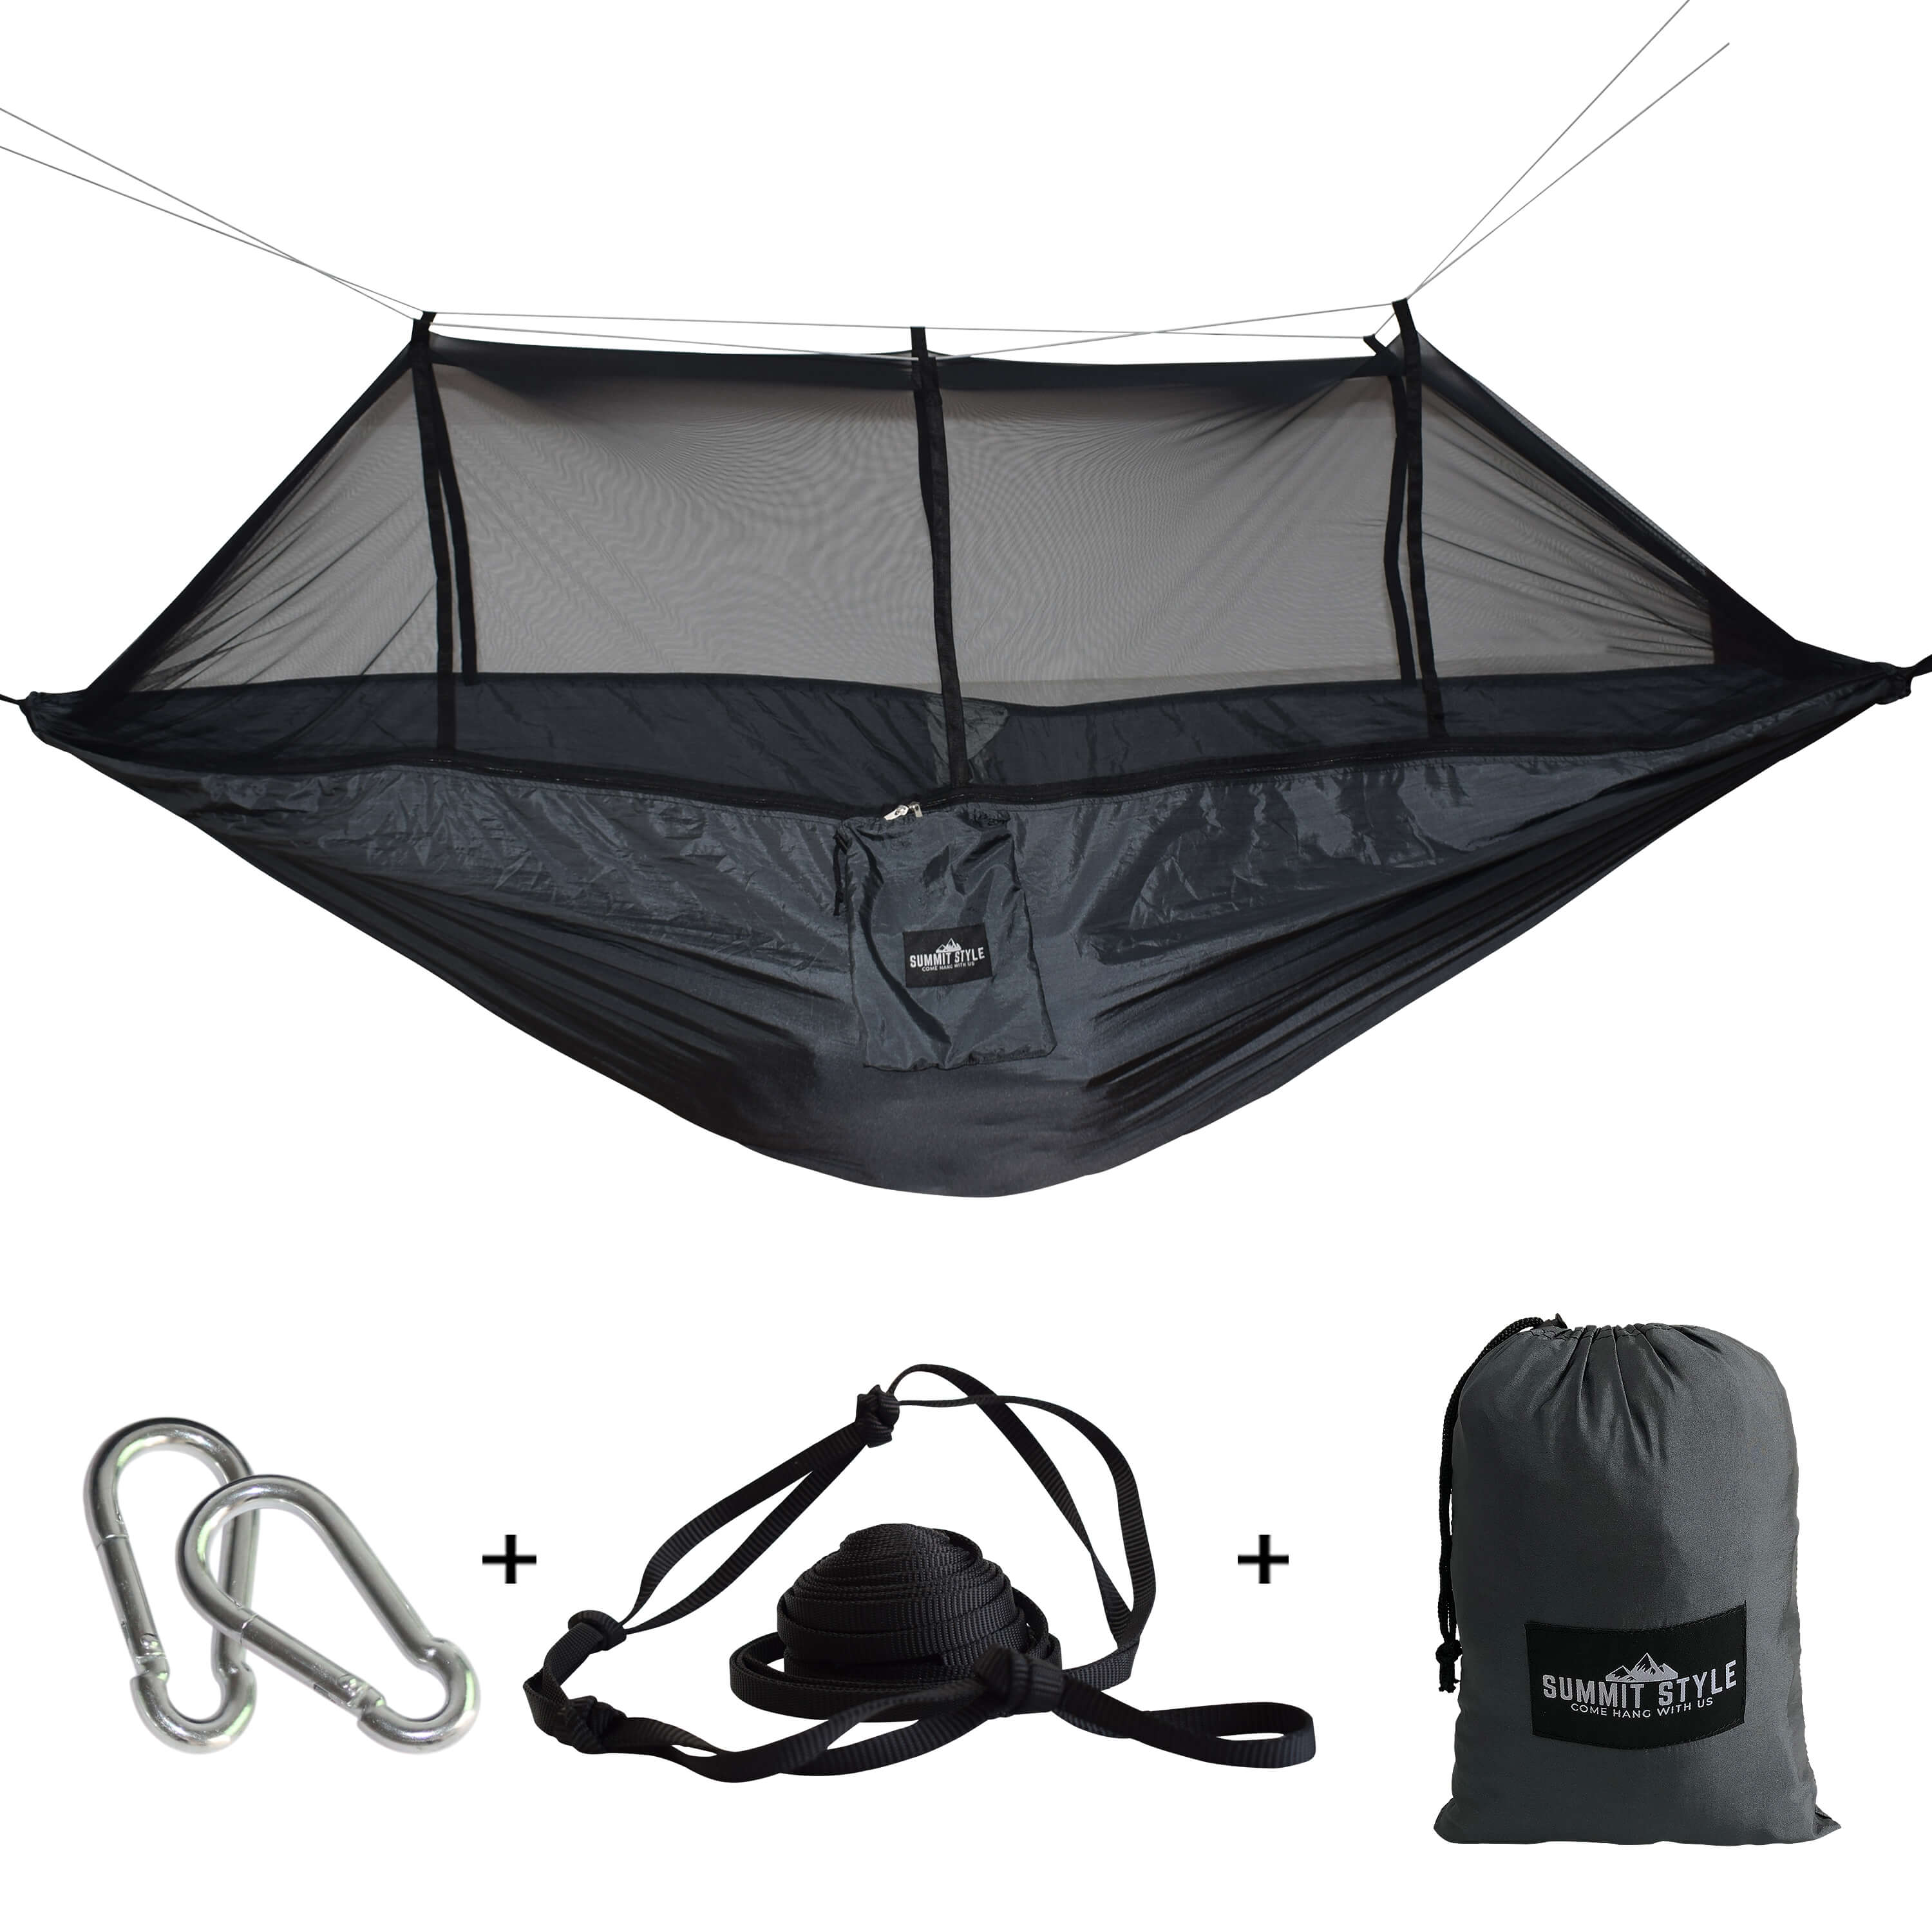 Summit Style's Nature Nest Hammock with Mosquito Net: Black